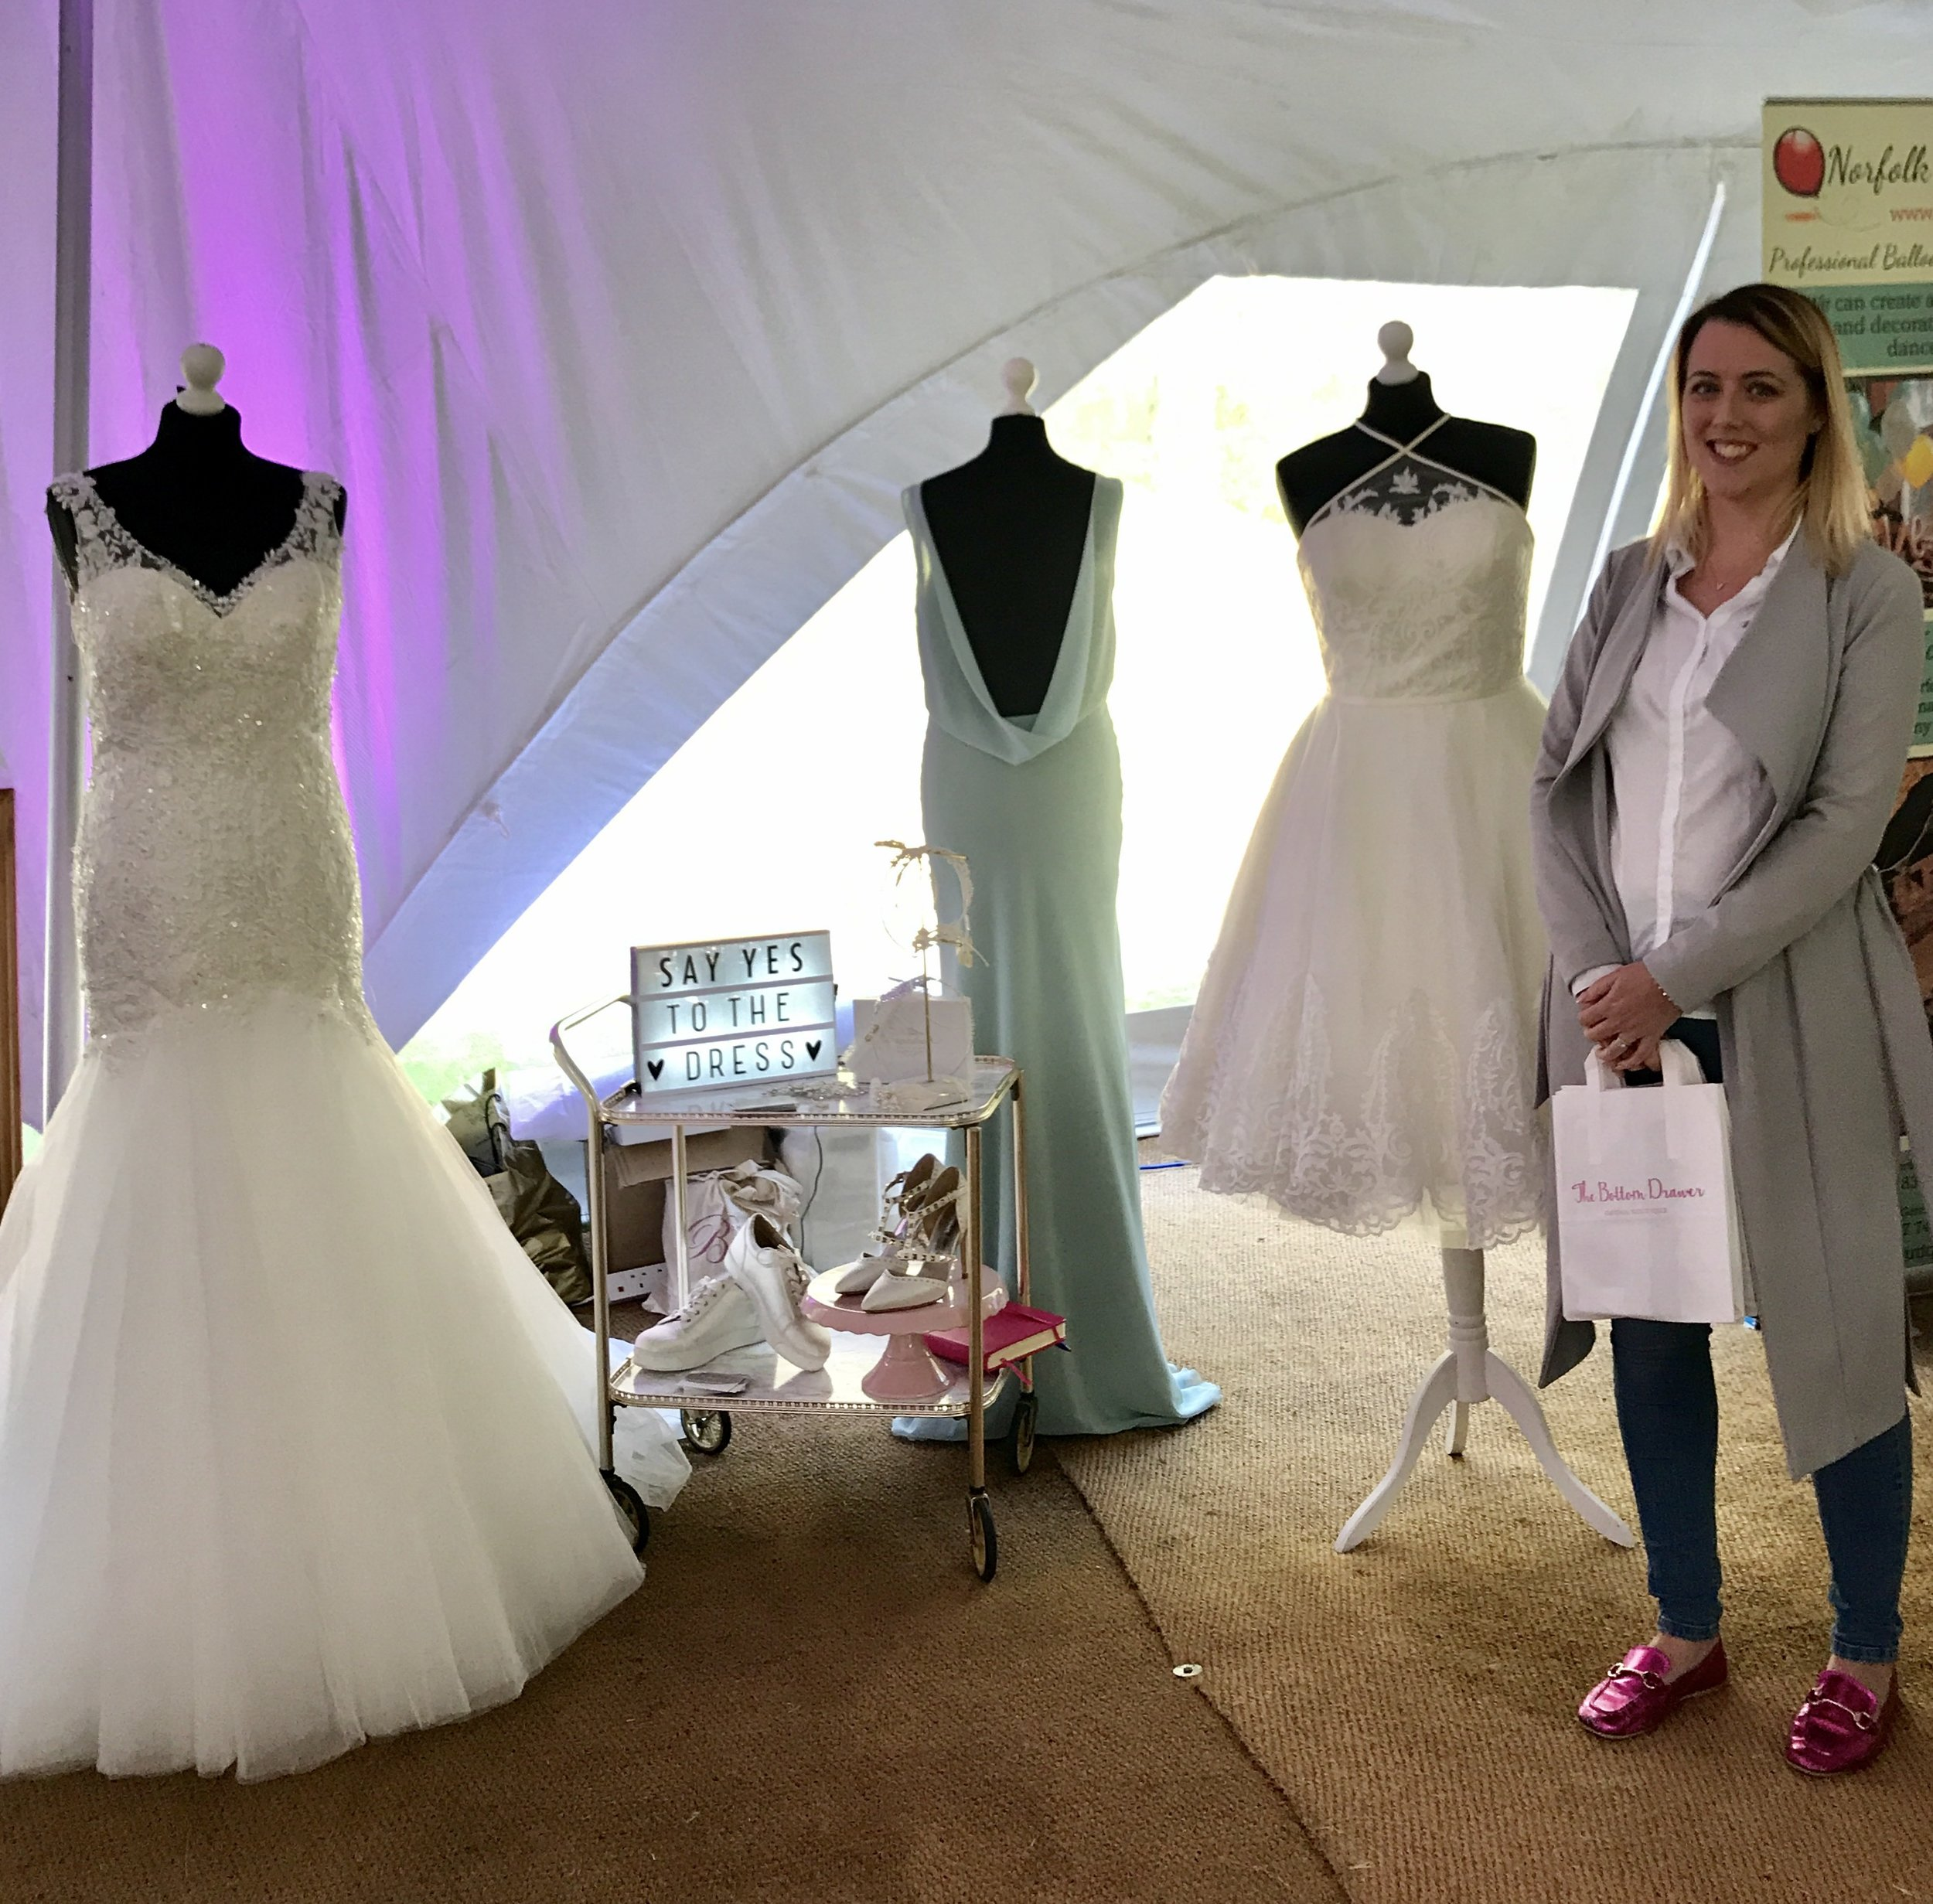 Victoria with her beautiful Gowns from Bottom Draw Bridal in Kings Lynn